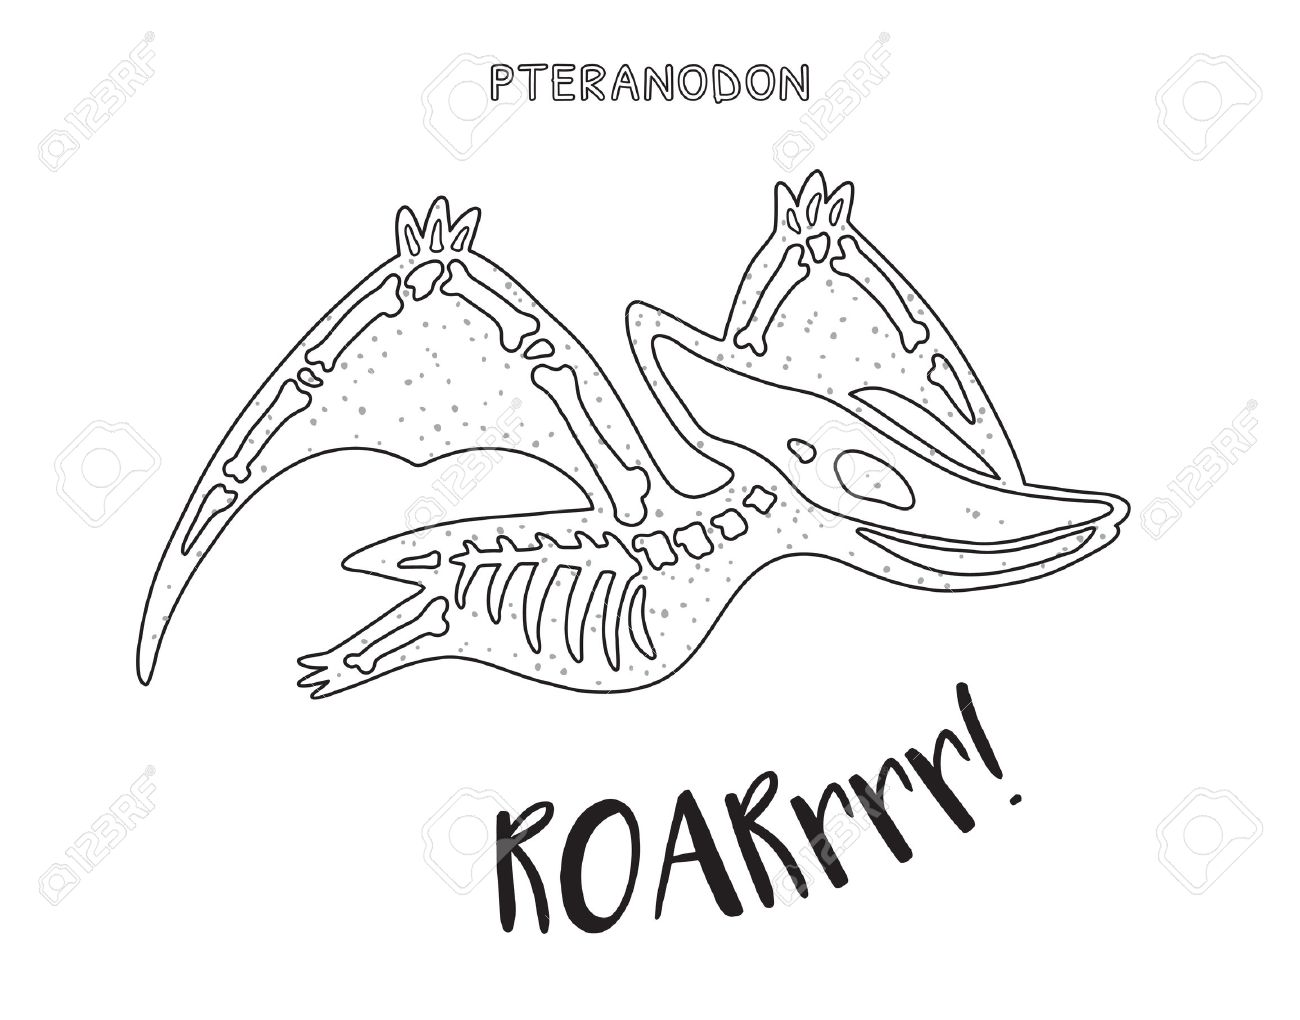 pteranodon skeleton outline drawing fossil of a pteranodon